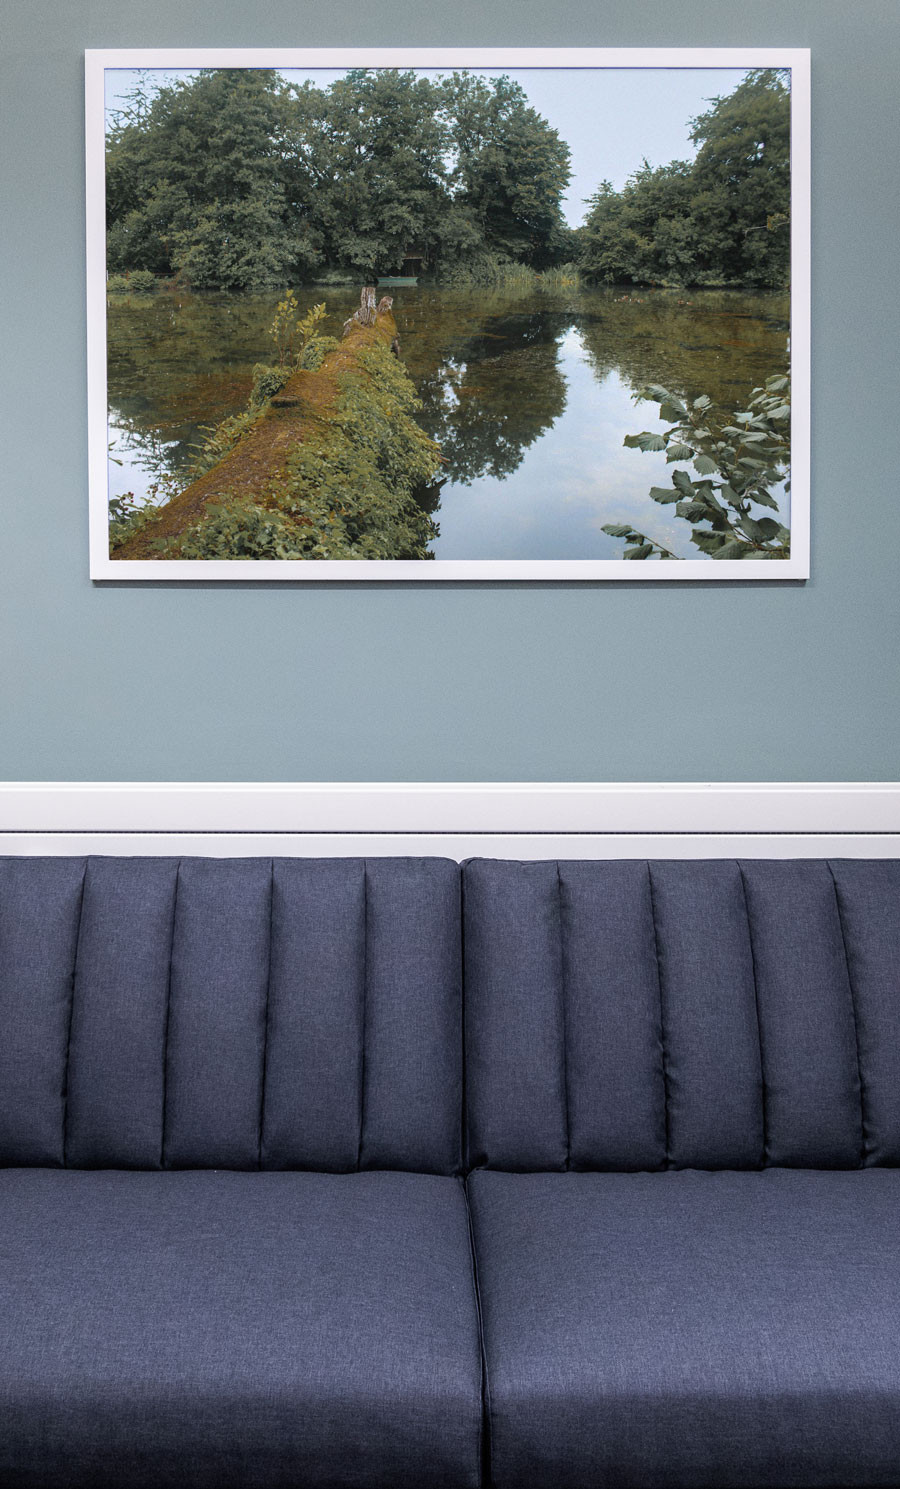 A close up photograph of the grey sofa with a framed photograph of a lake landscape at the 1account office